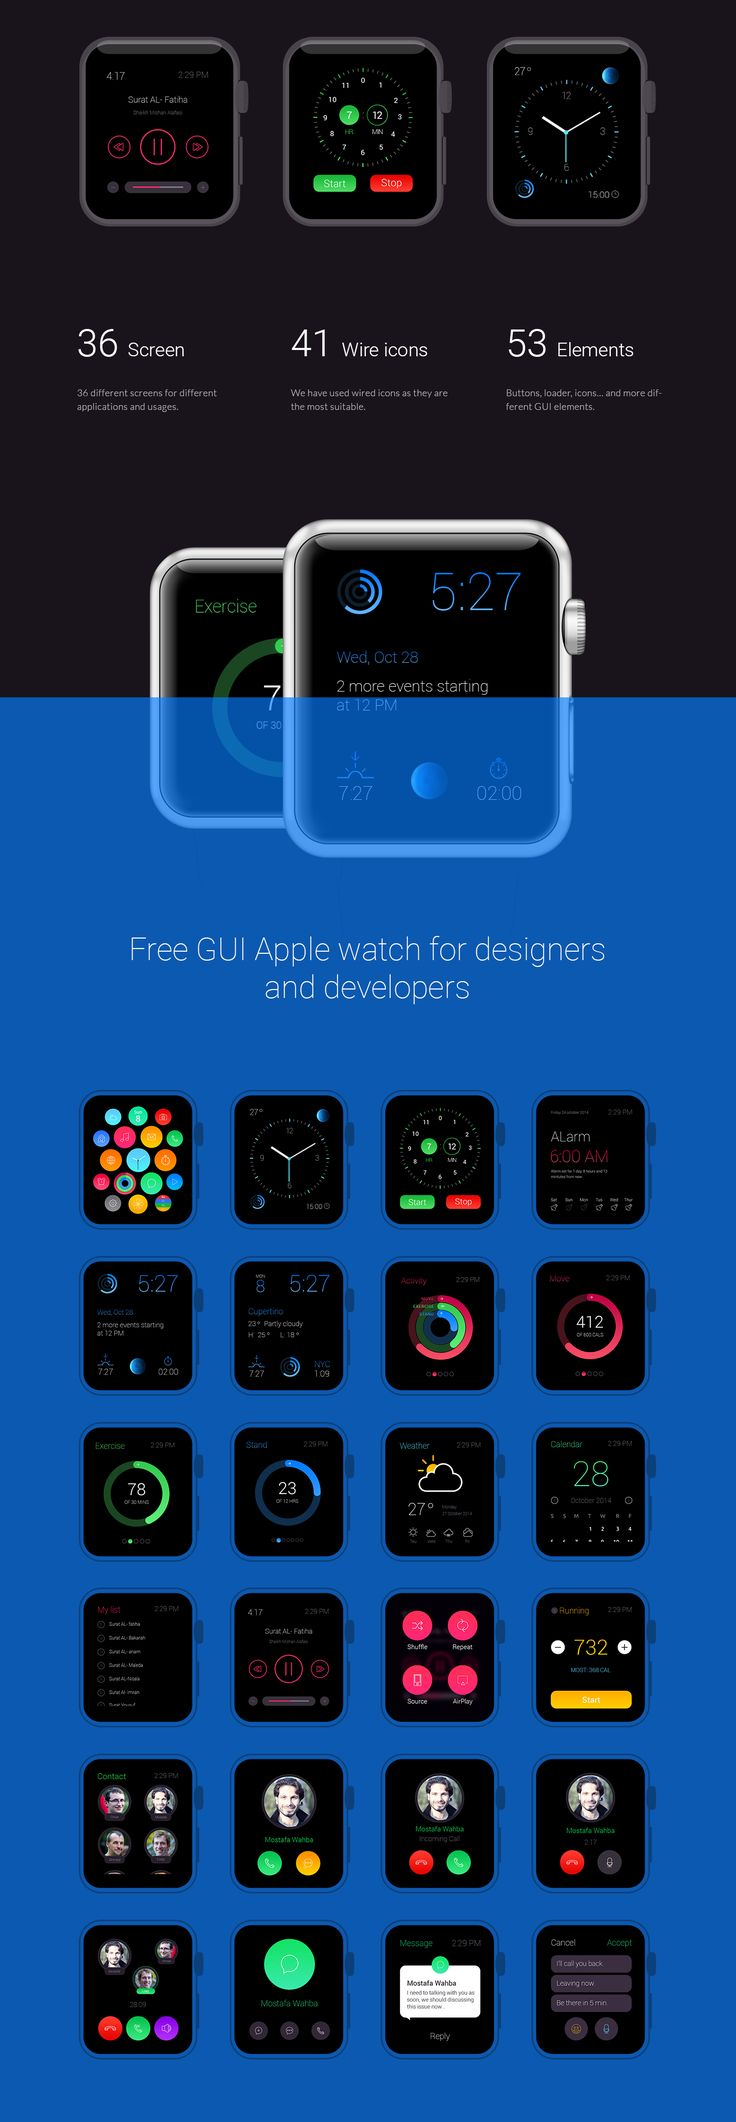 Free Apple watch GUI - 36 Elements on Behance